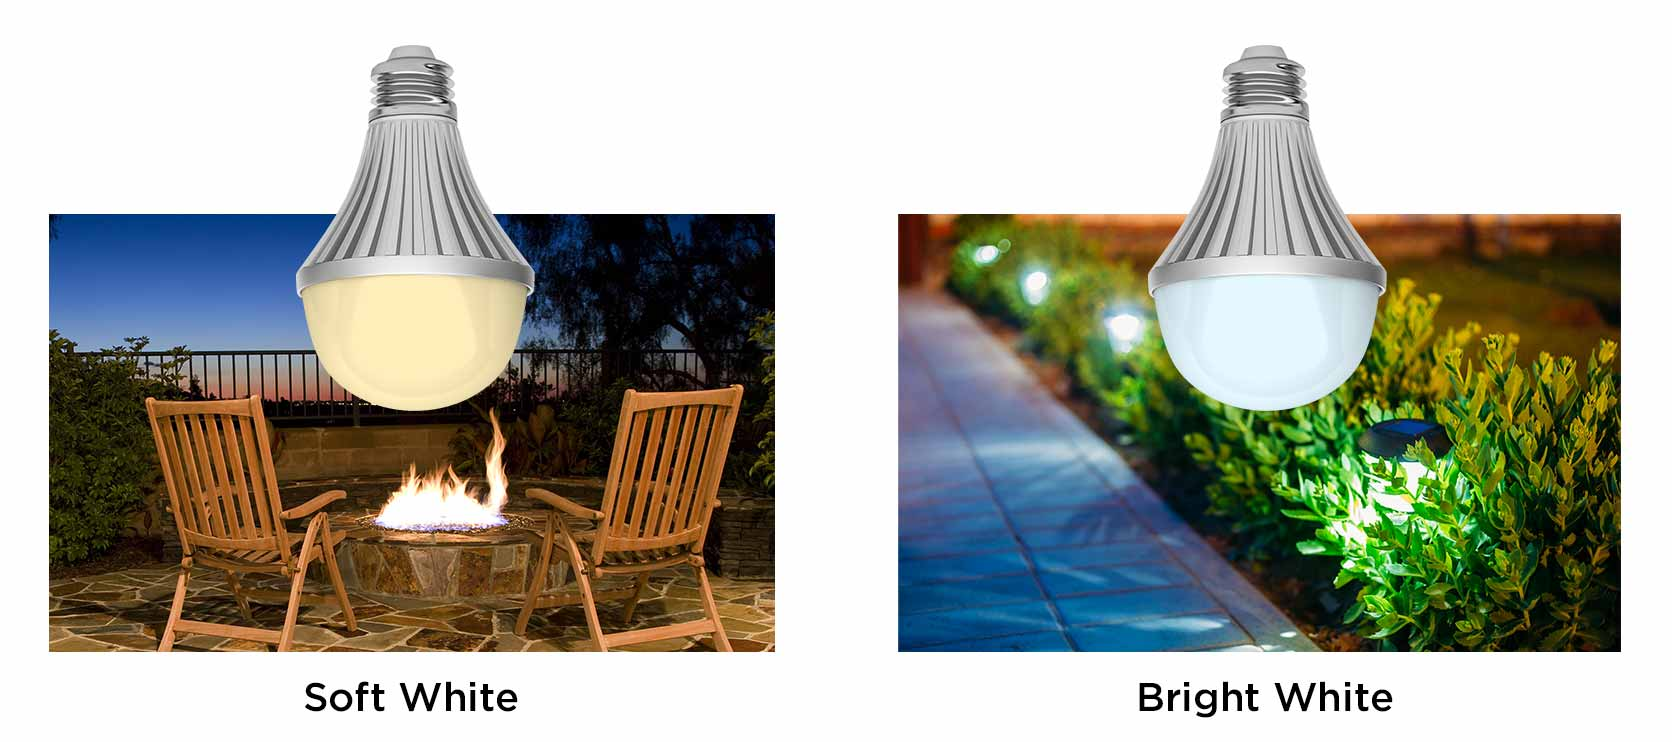 With Kelvins The Lower Number Warmer Light For Example 2 700 Gives You A Golden And 6 500 Creates Brighter